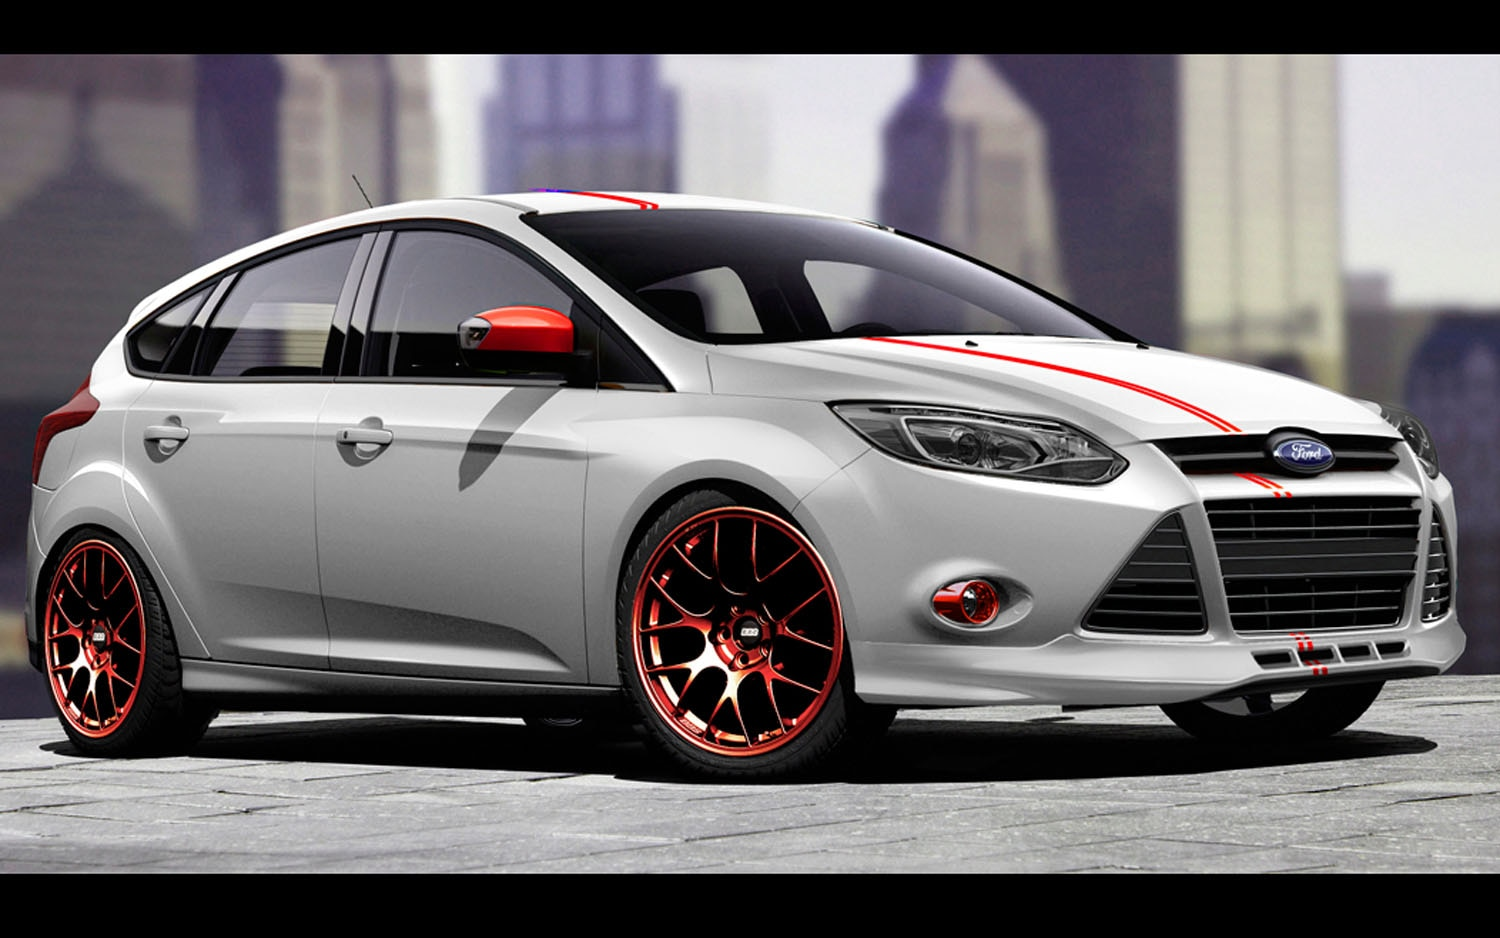 ford previews focus fiesta concepts ahead of sema show. Black Bedroom Furniture Sets. Home Design Ideas